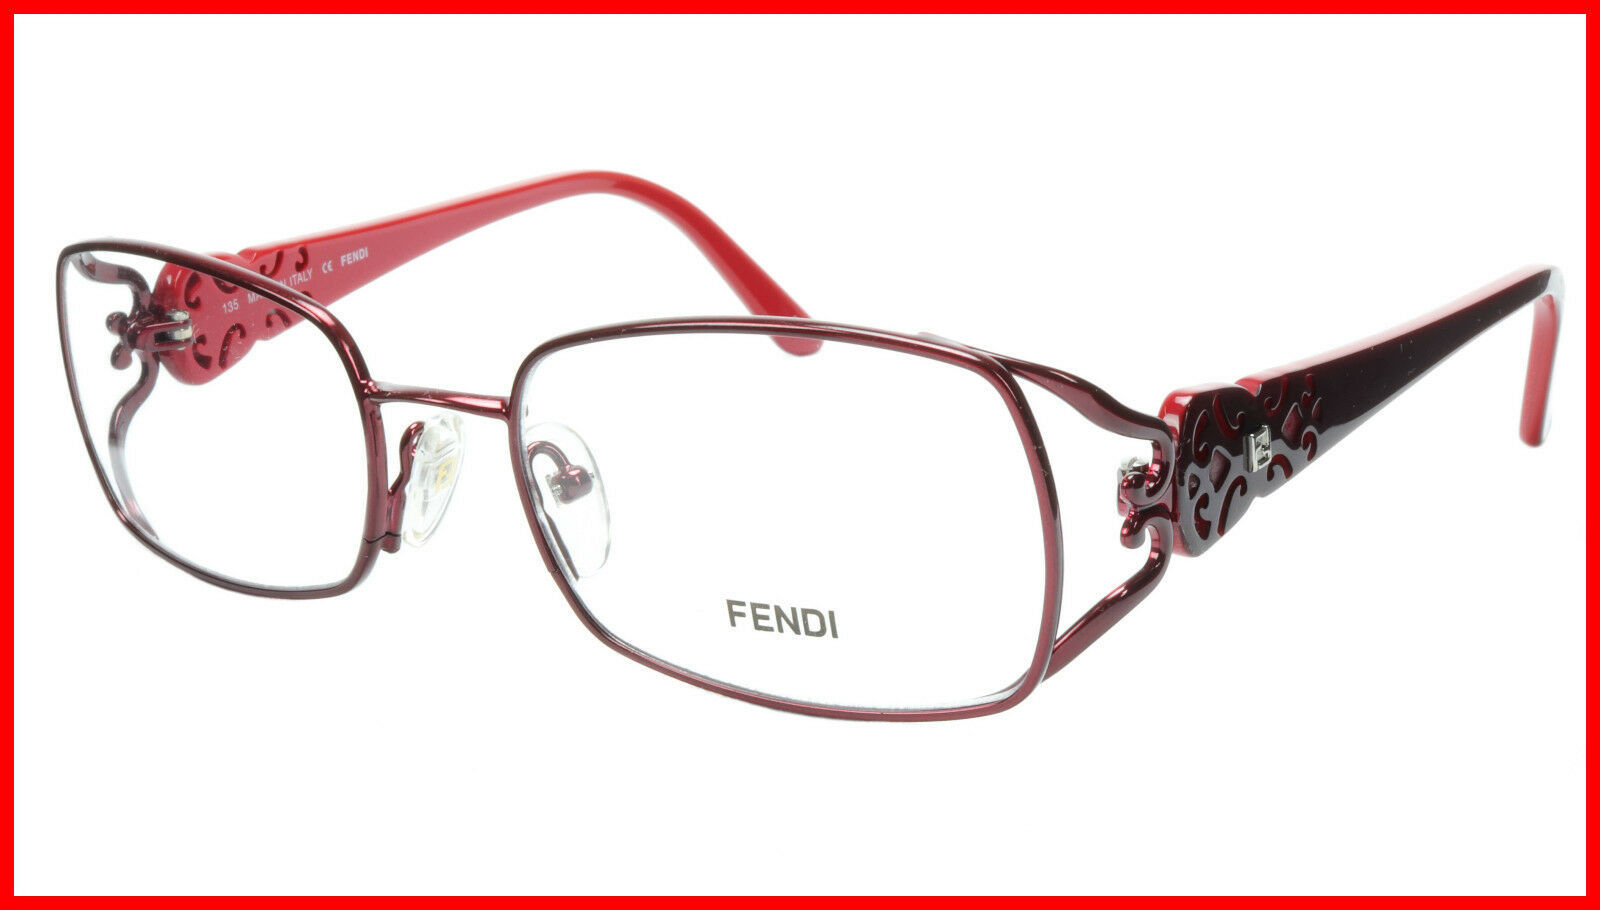 Primary image for FENDI Eyeglasses Frame F872 (615) Metal Acetate Bordeaux Italy Made 52-17-135 34